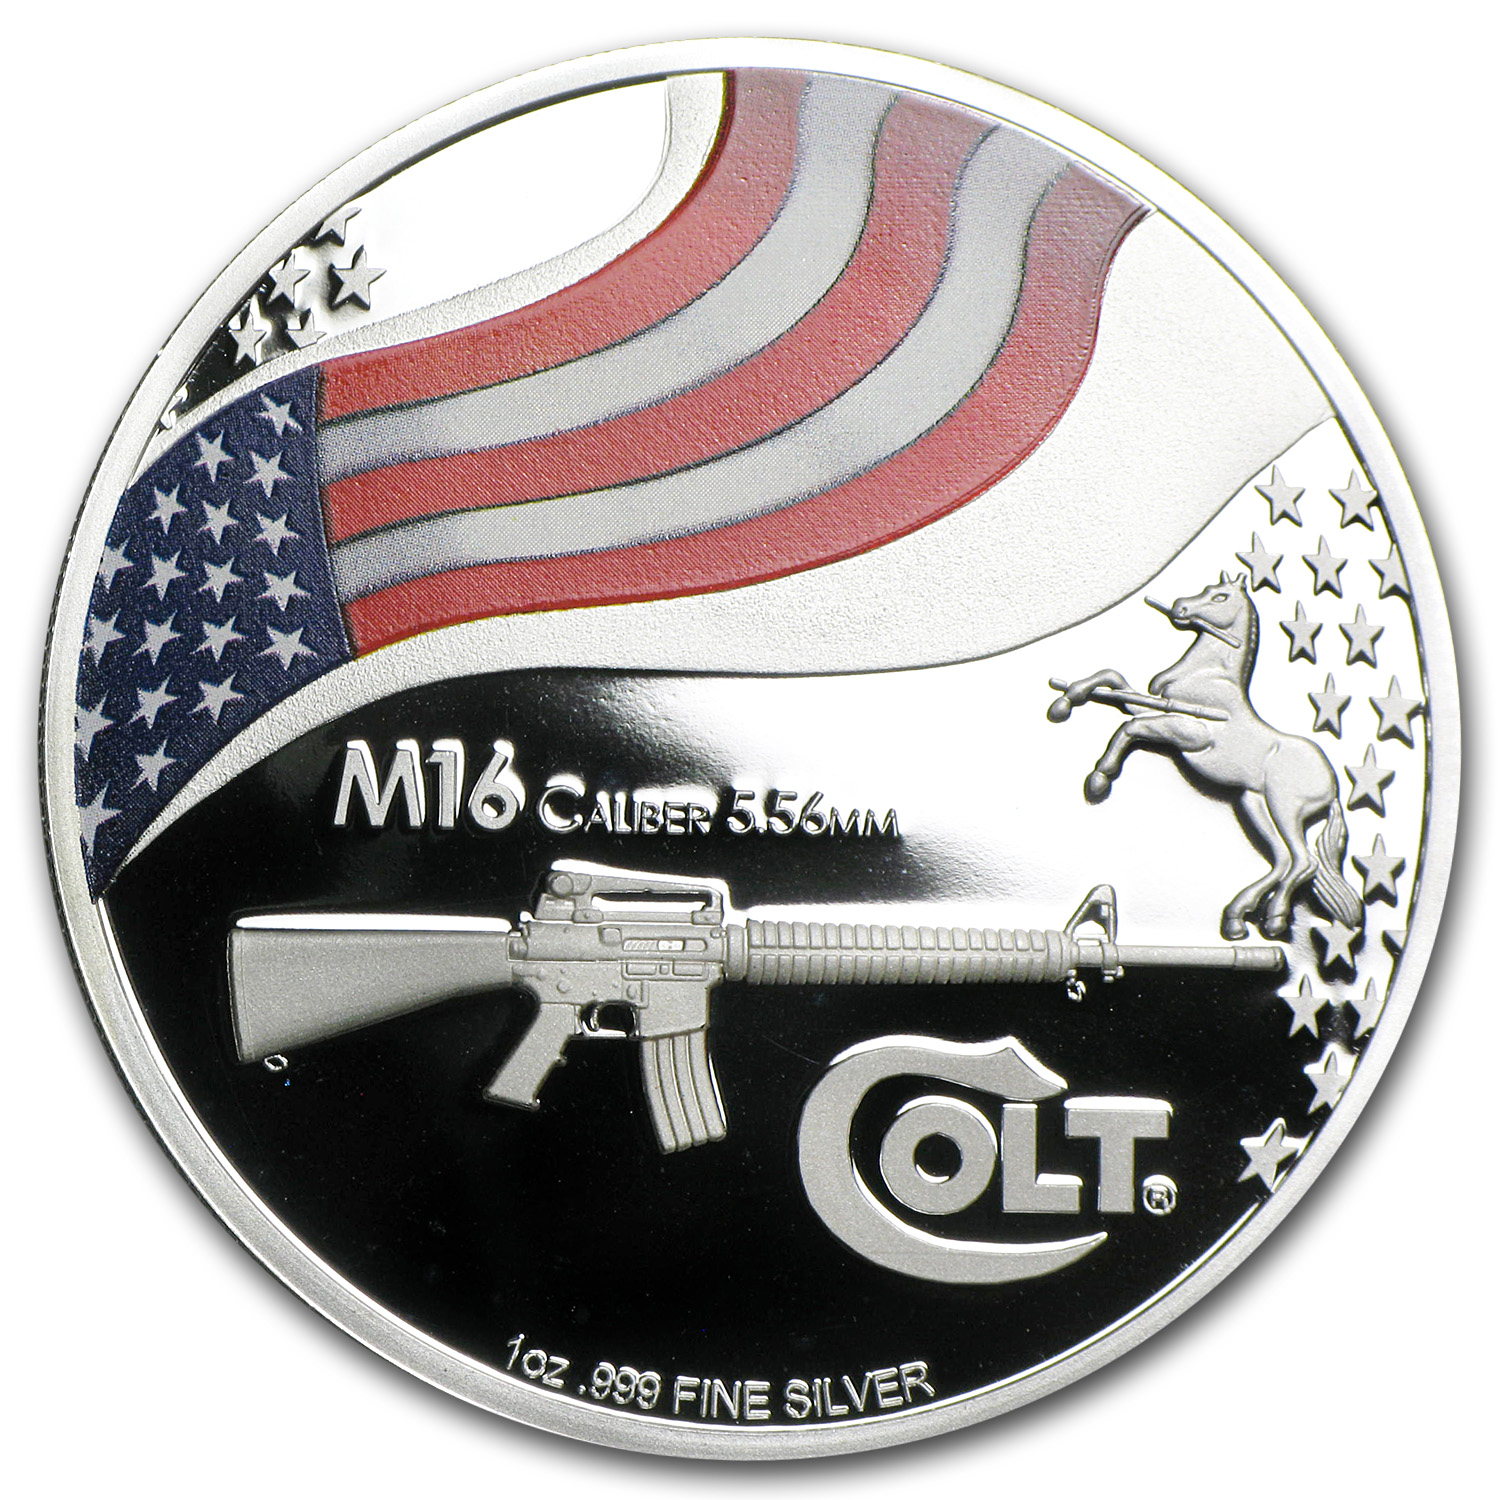 2010 1 oz Silver New Zealand $5 American Colt M16 (W/Box & COA)